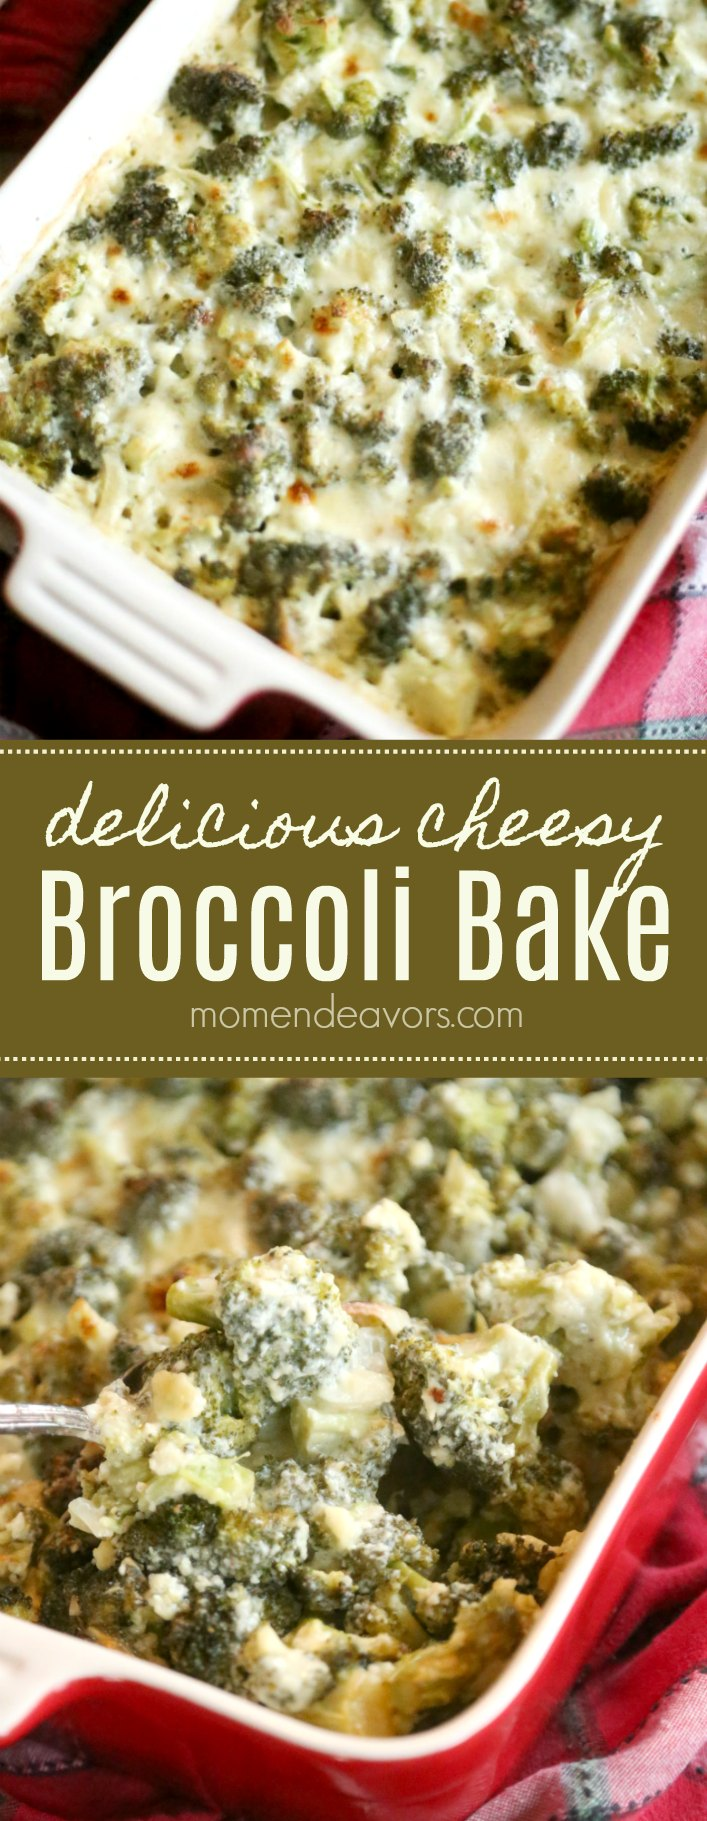 Delicious Cheesy Broccoli Bake Side Dish